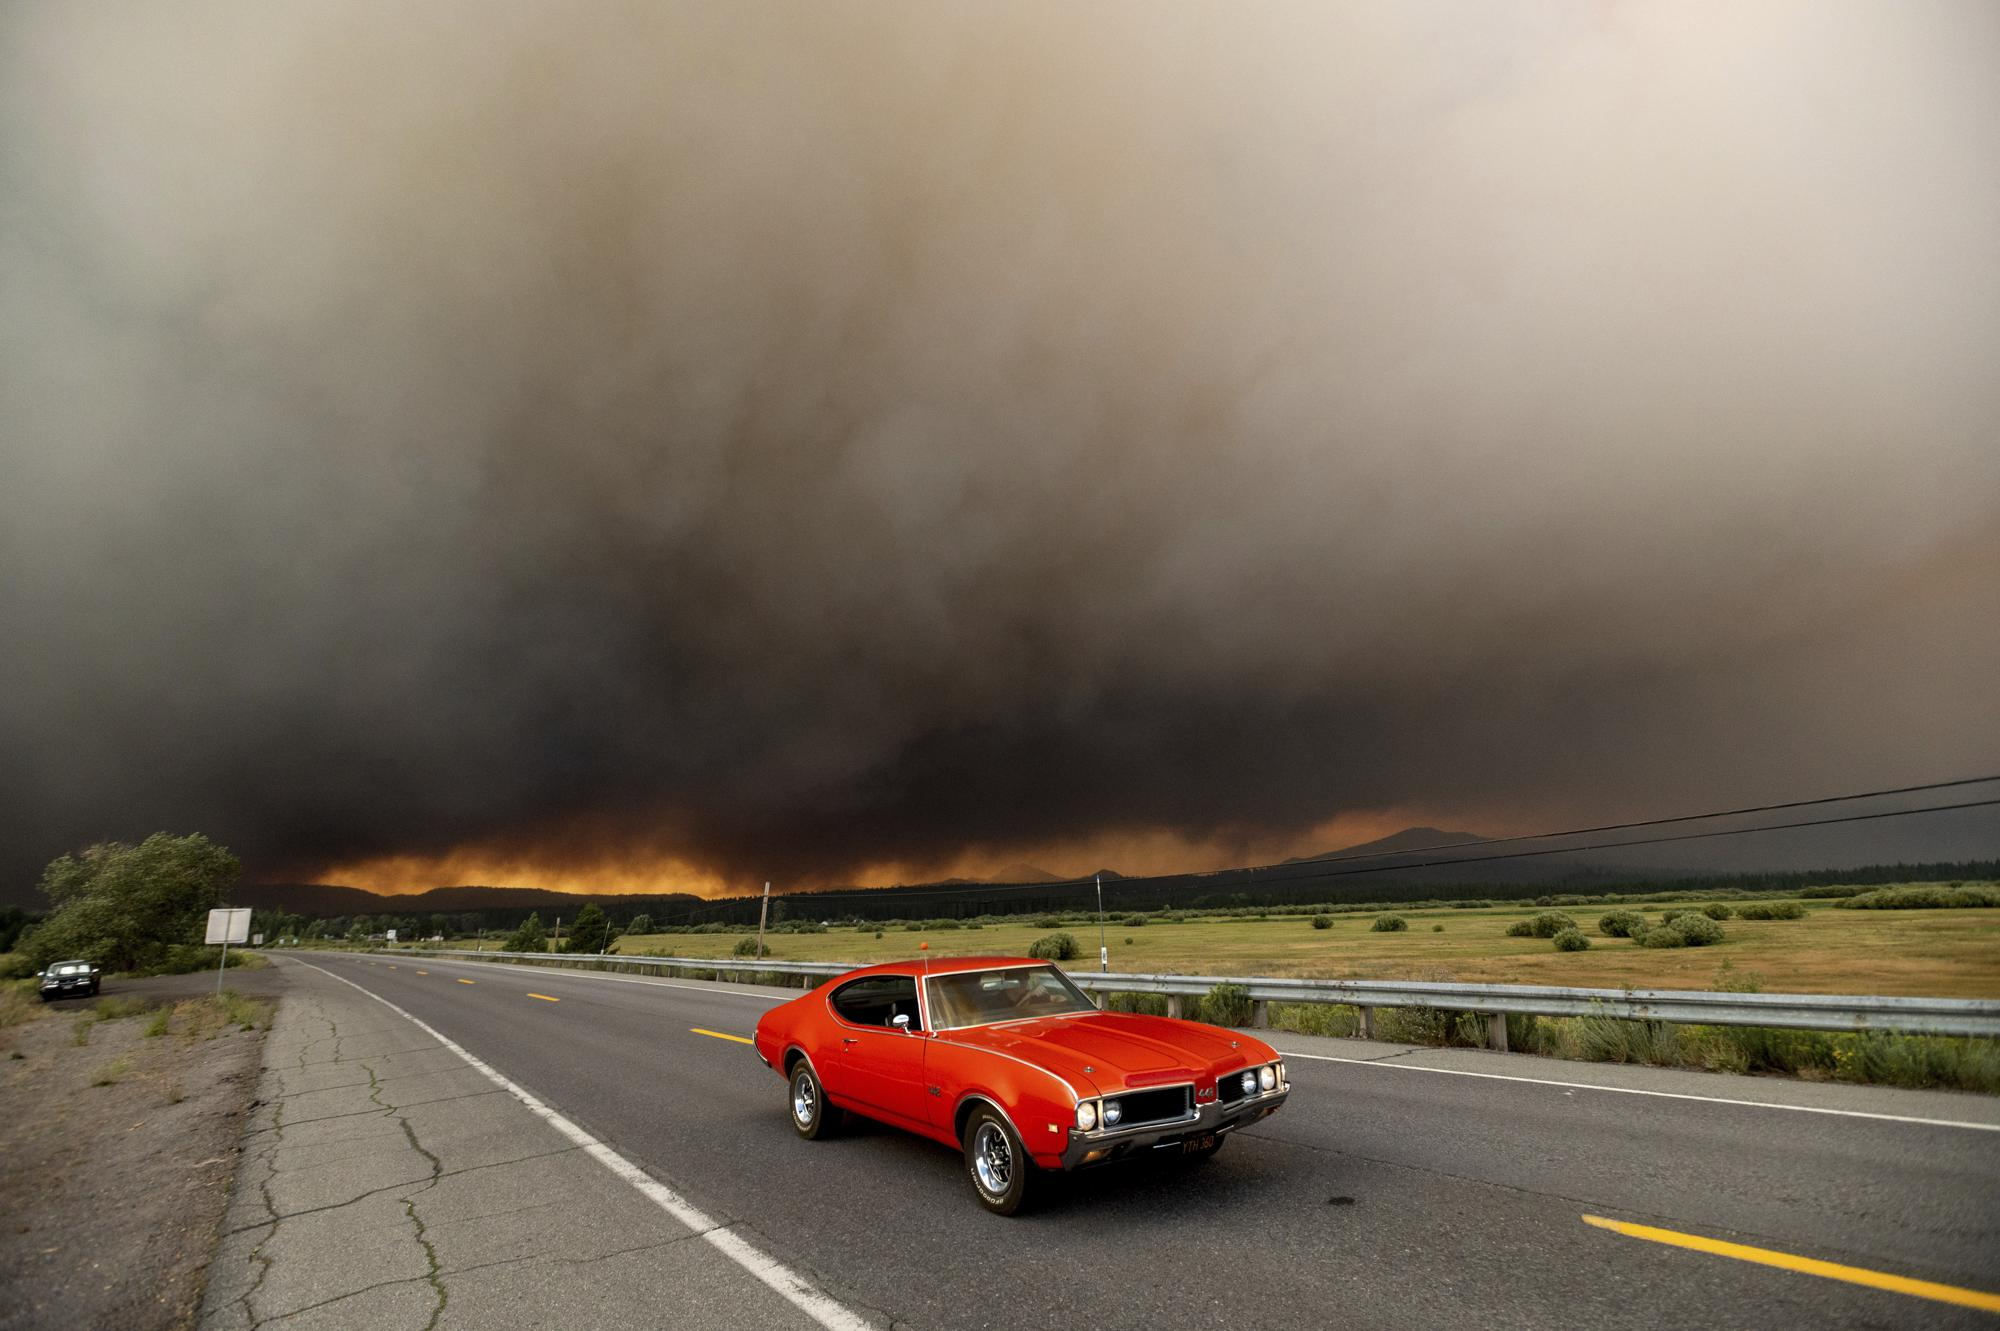 A car leaves Chester, Calif., which is under mandatory evacuation orders, as the Dixie Fire burns on the edge of town on Wednesday, Aug. 4, 2021. The region is under red flag fire warnings due to dry, windy conditions. (AP Photo/Noah Berger)